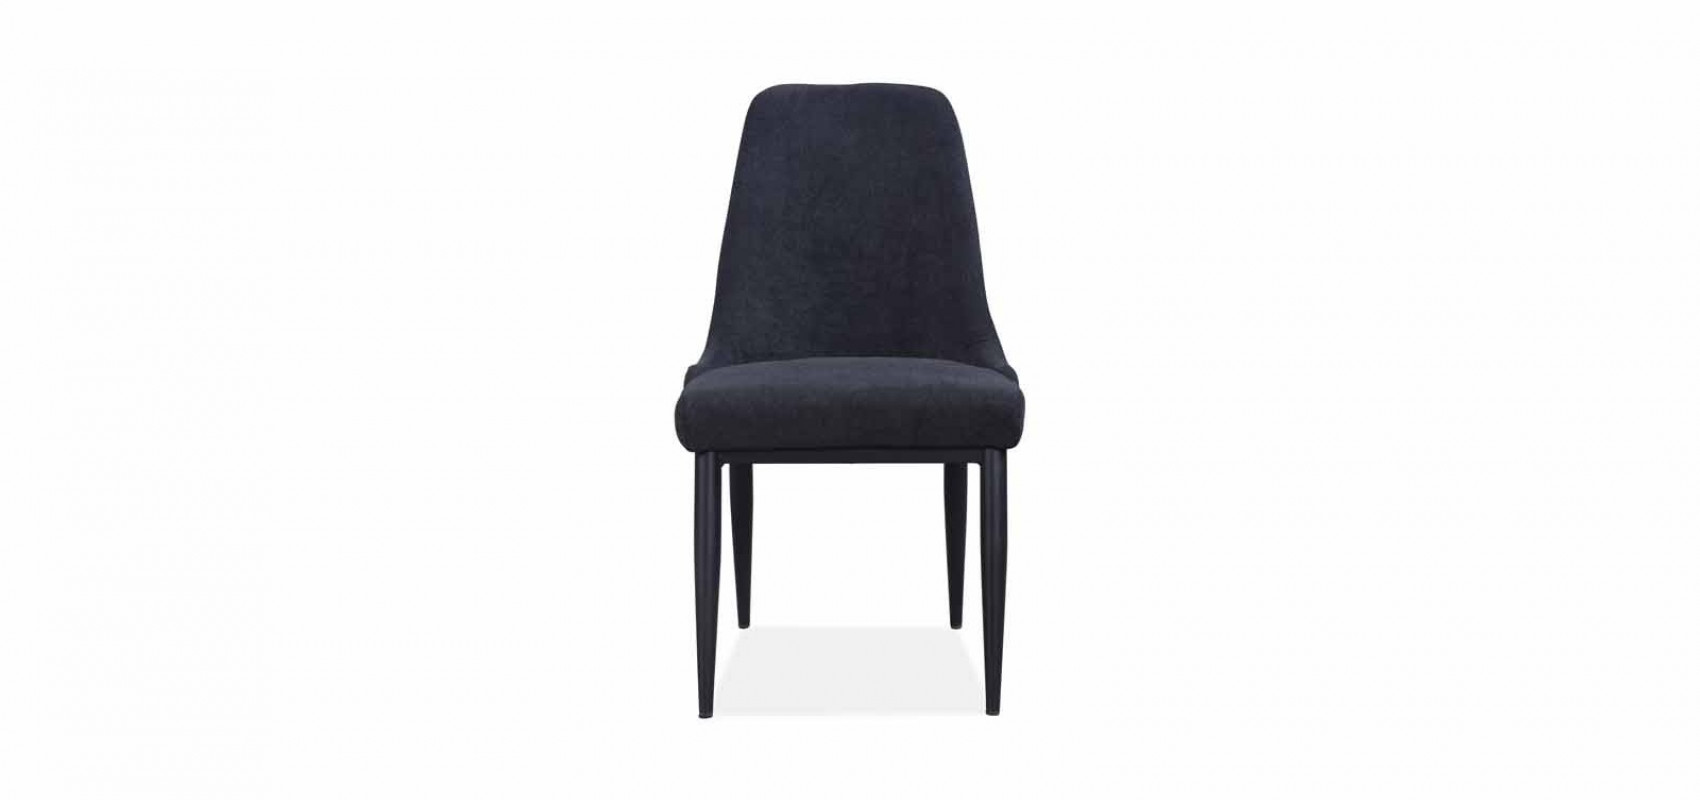 Mid Century Dining Chair:  Velvet Charcoal (2 x Box)